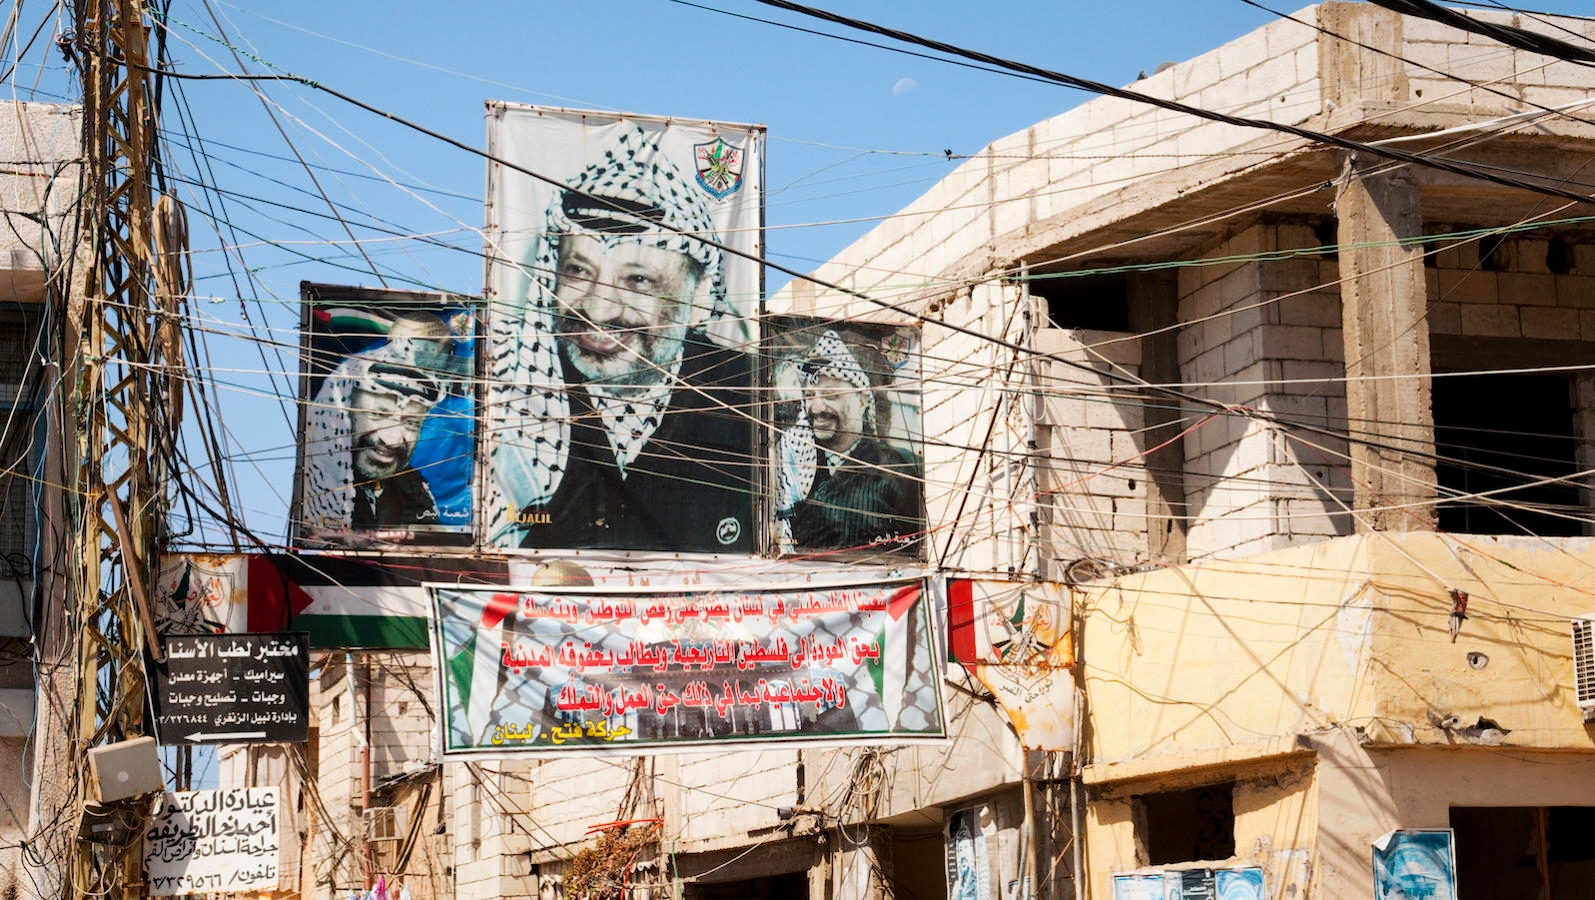 an analysis of the past failures of the palestinian liberation organization What is the palestinian-israeli conflict really about  in all of palestine than from the failures of the secular nationalist palestine liberation organization.